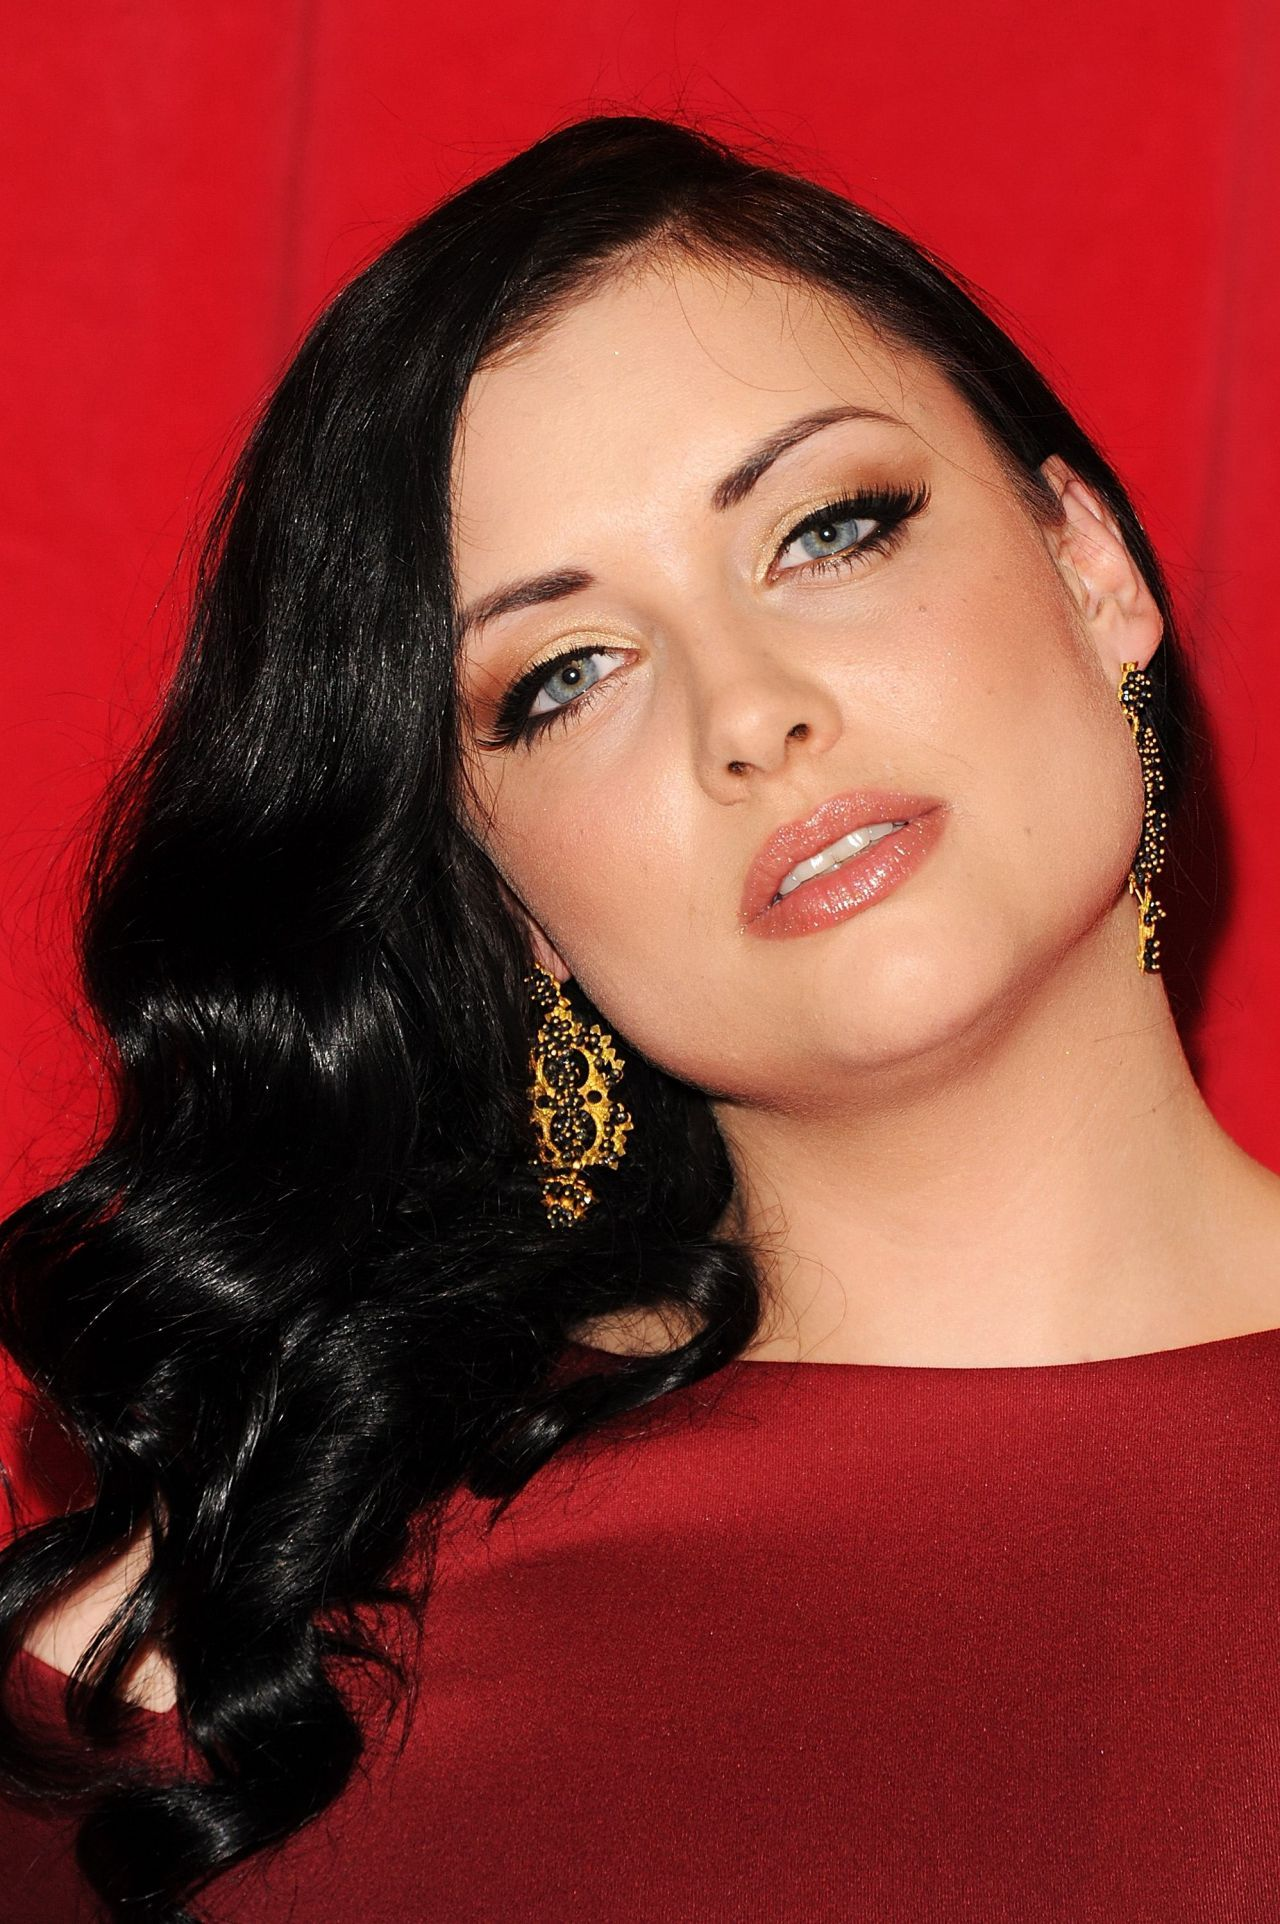 Instagram Shona Mcgarty nude photos 2019